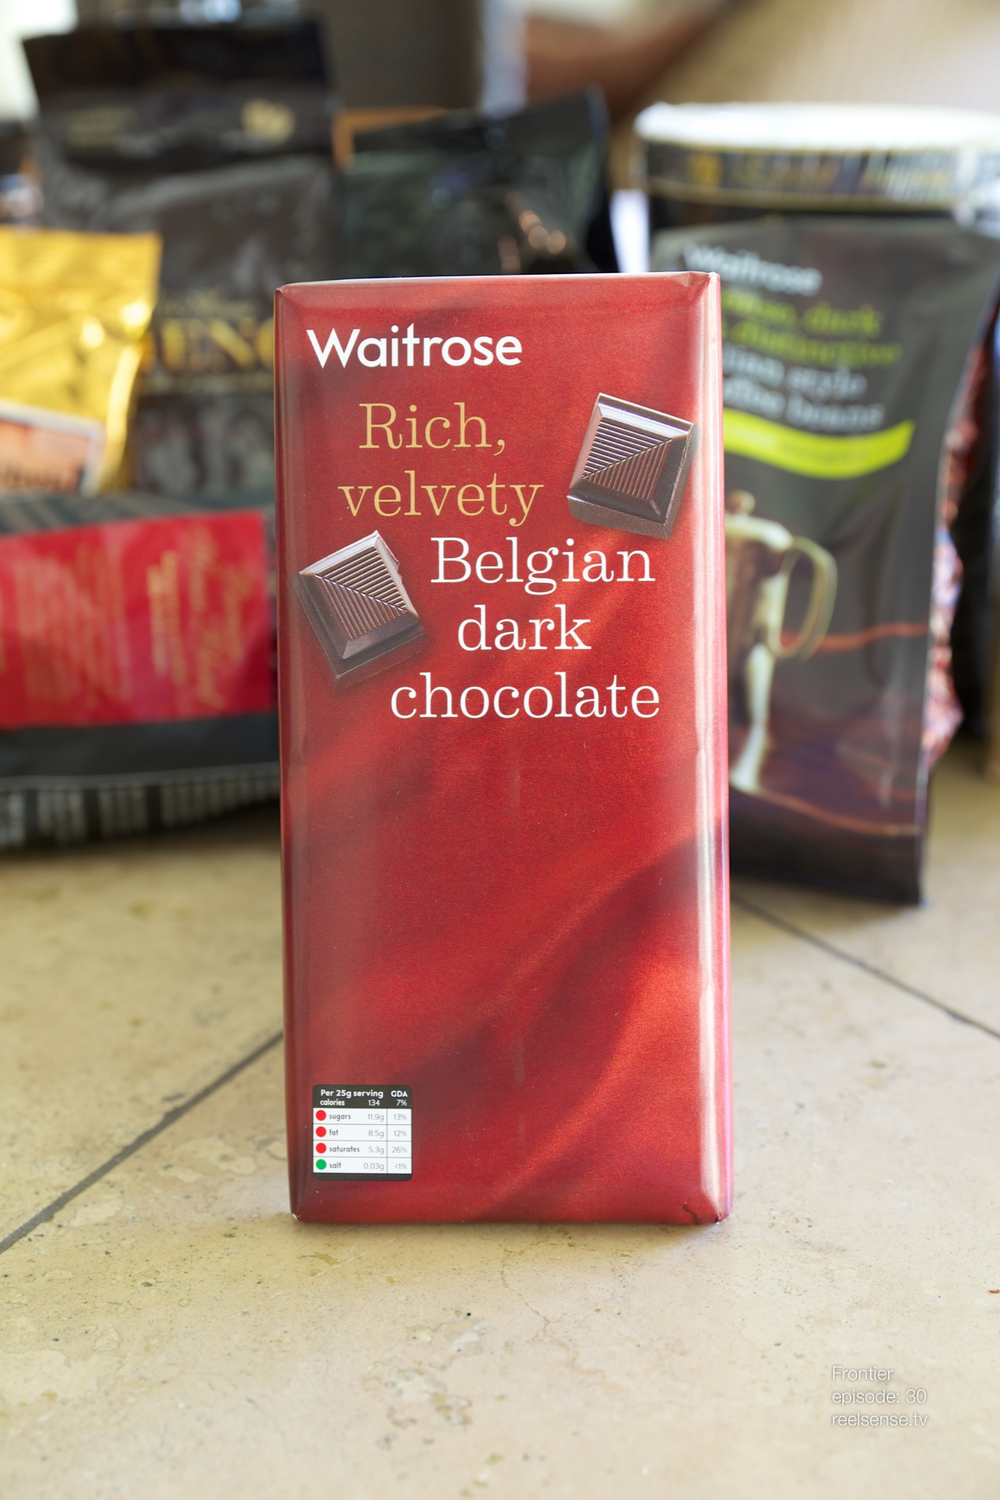 Waitrose - Belgian Dark Chocolate - London, England